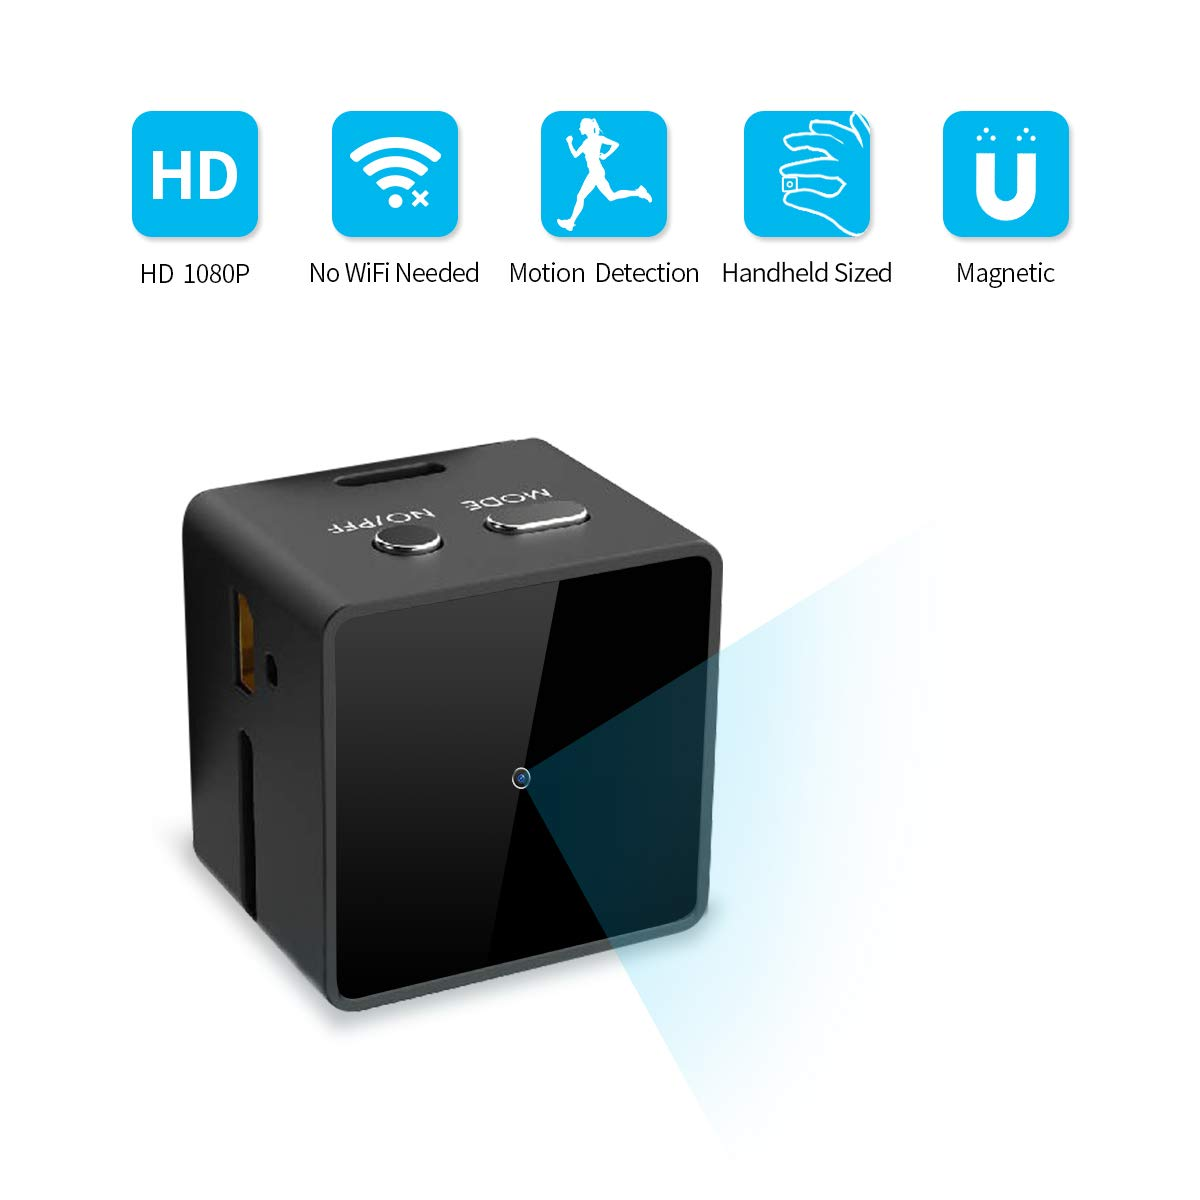 Upgraded Mini Spy Hidden Camera, JOYTRIP Portable HD 1080P Tiny Cube Spy Camera Wireless Hidden Home Security Nanny Cam with Motion Activated AV Output as USB Flash Driver- No WiFi Needed